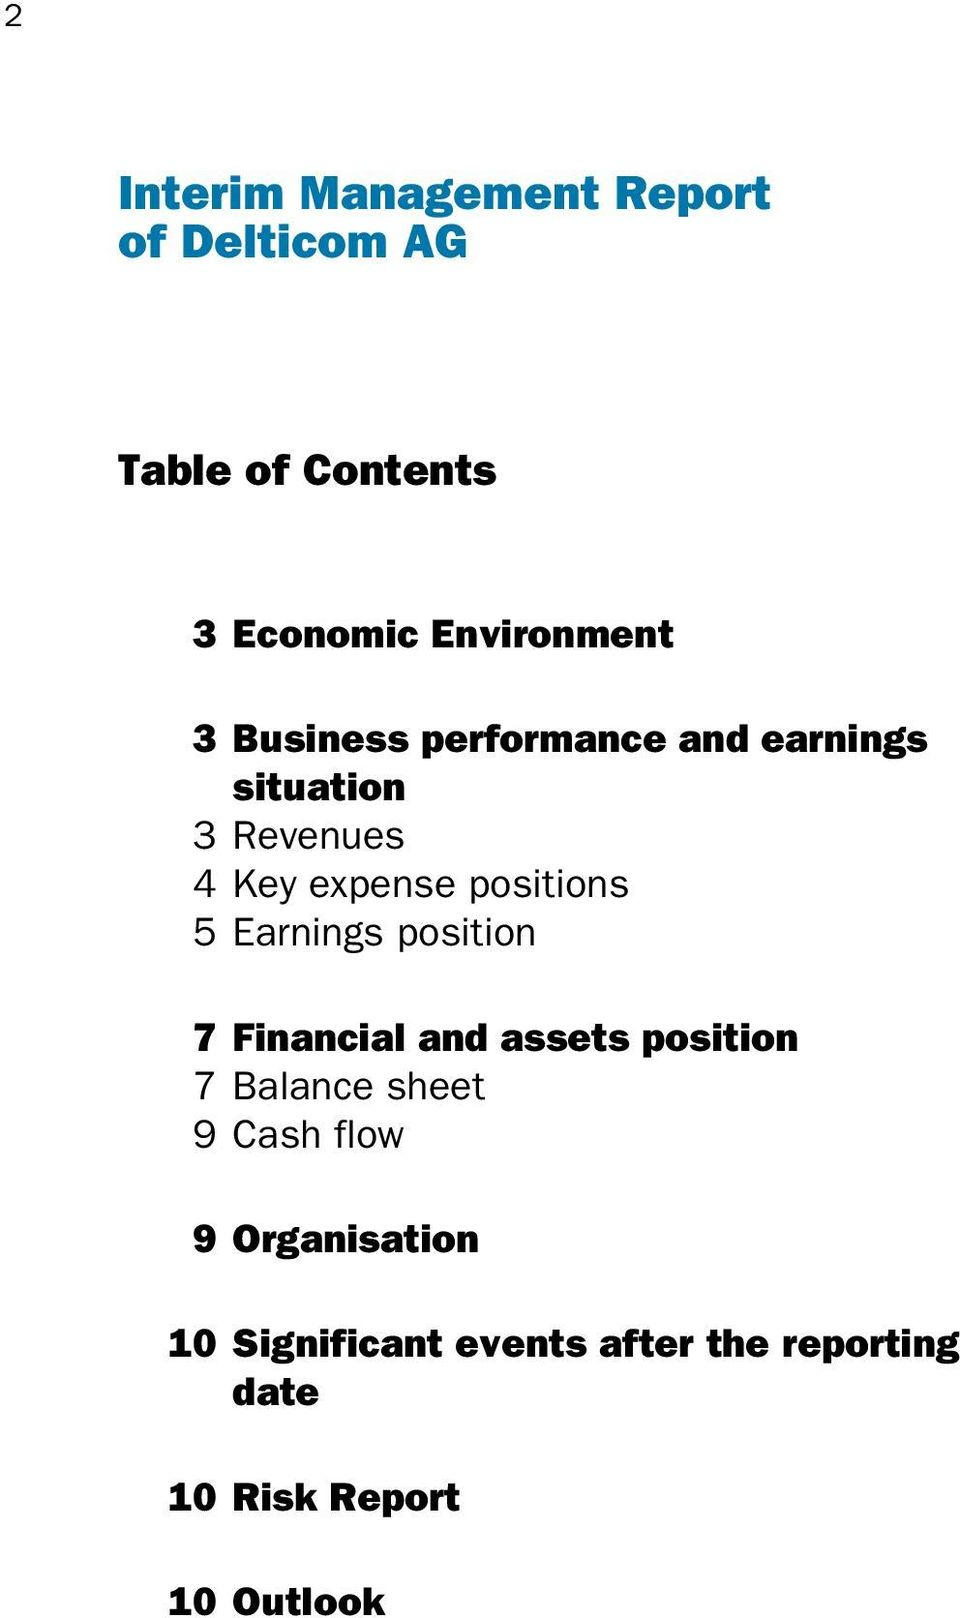 positions 5 Earnings position 7 Financial and assets position 7 Balance sheet 9